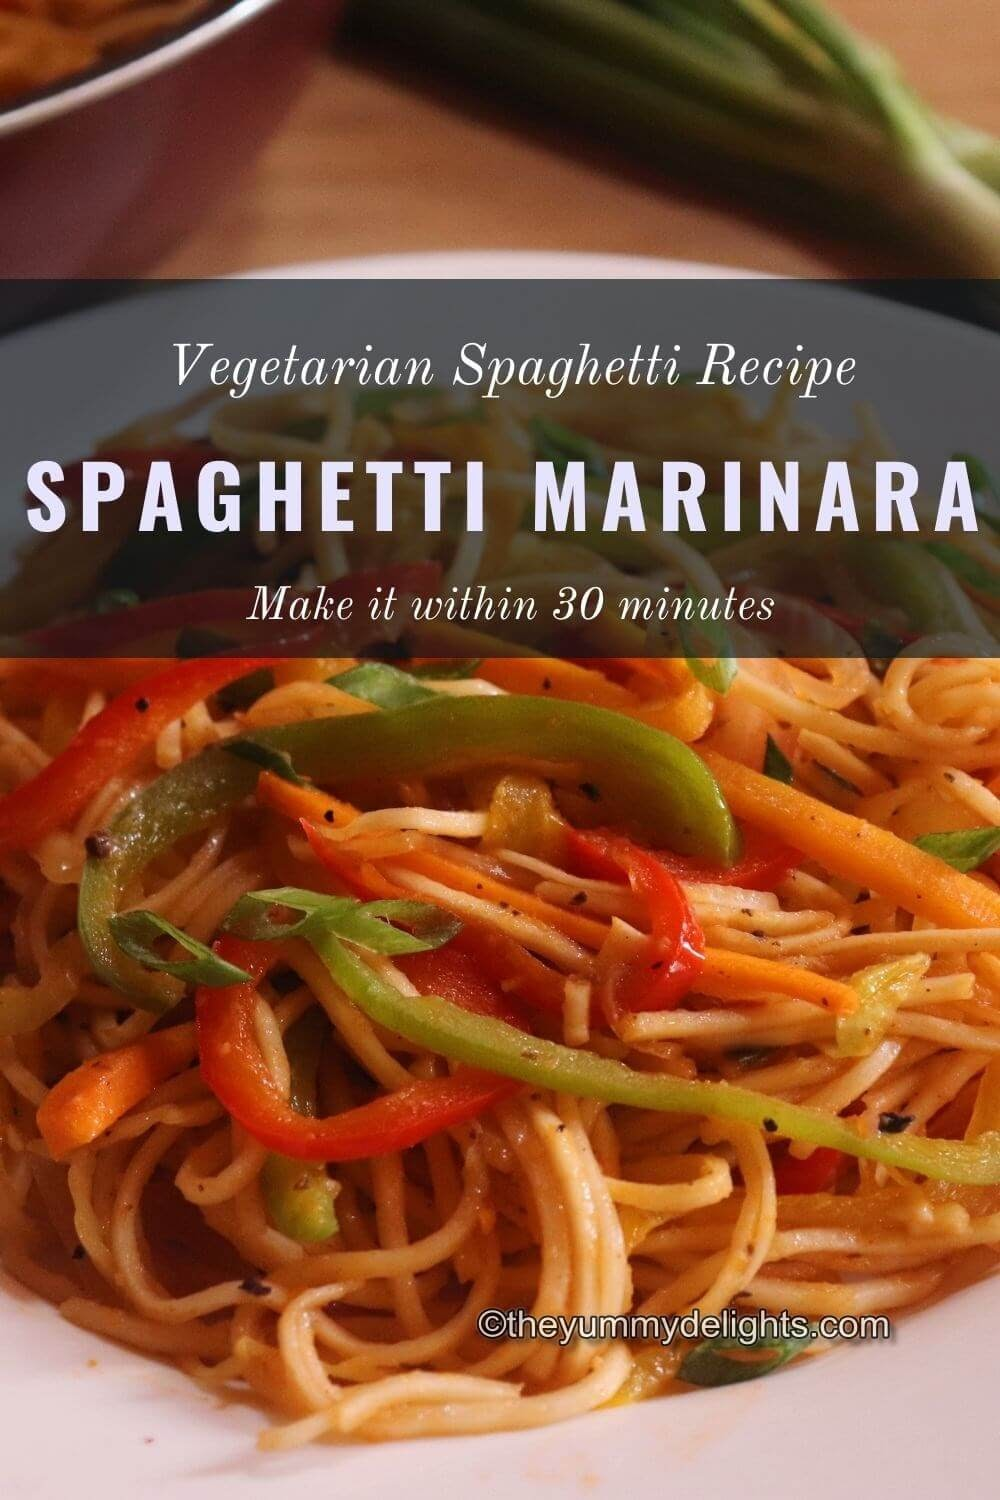 close up image of spaghetti marinara served in a white plate. This vegetarian spaghetti is garnished with spring onion greens